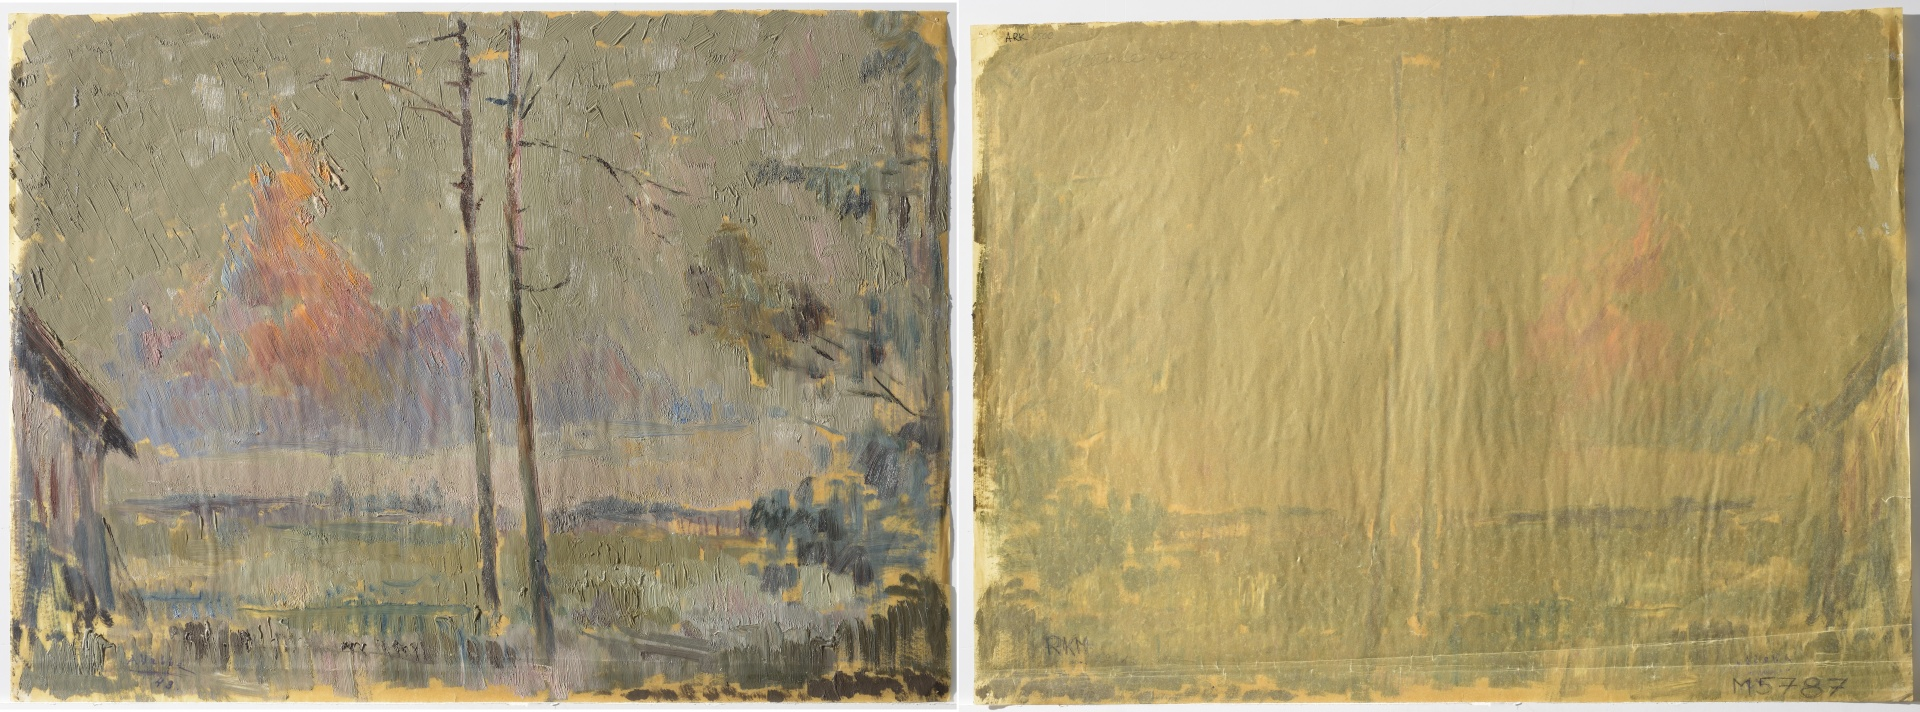 fig 8. A.Vabbe Swamp landscape , 1943. EKM M 5787. Front and back sides of the painting. The paper is thin (0.09mm), fragile, leathery and totally soaked through with oil. No lignin. Adhesion of the oil paint on paper was good but a few losses were detected on the crests of breaking lines.